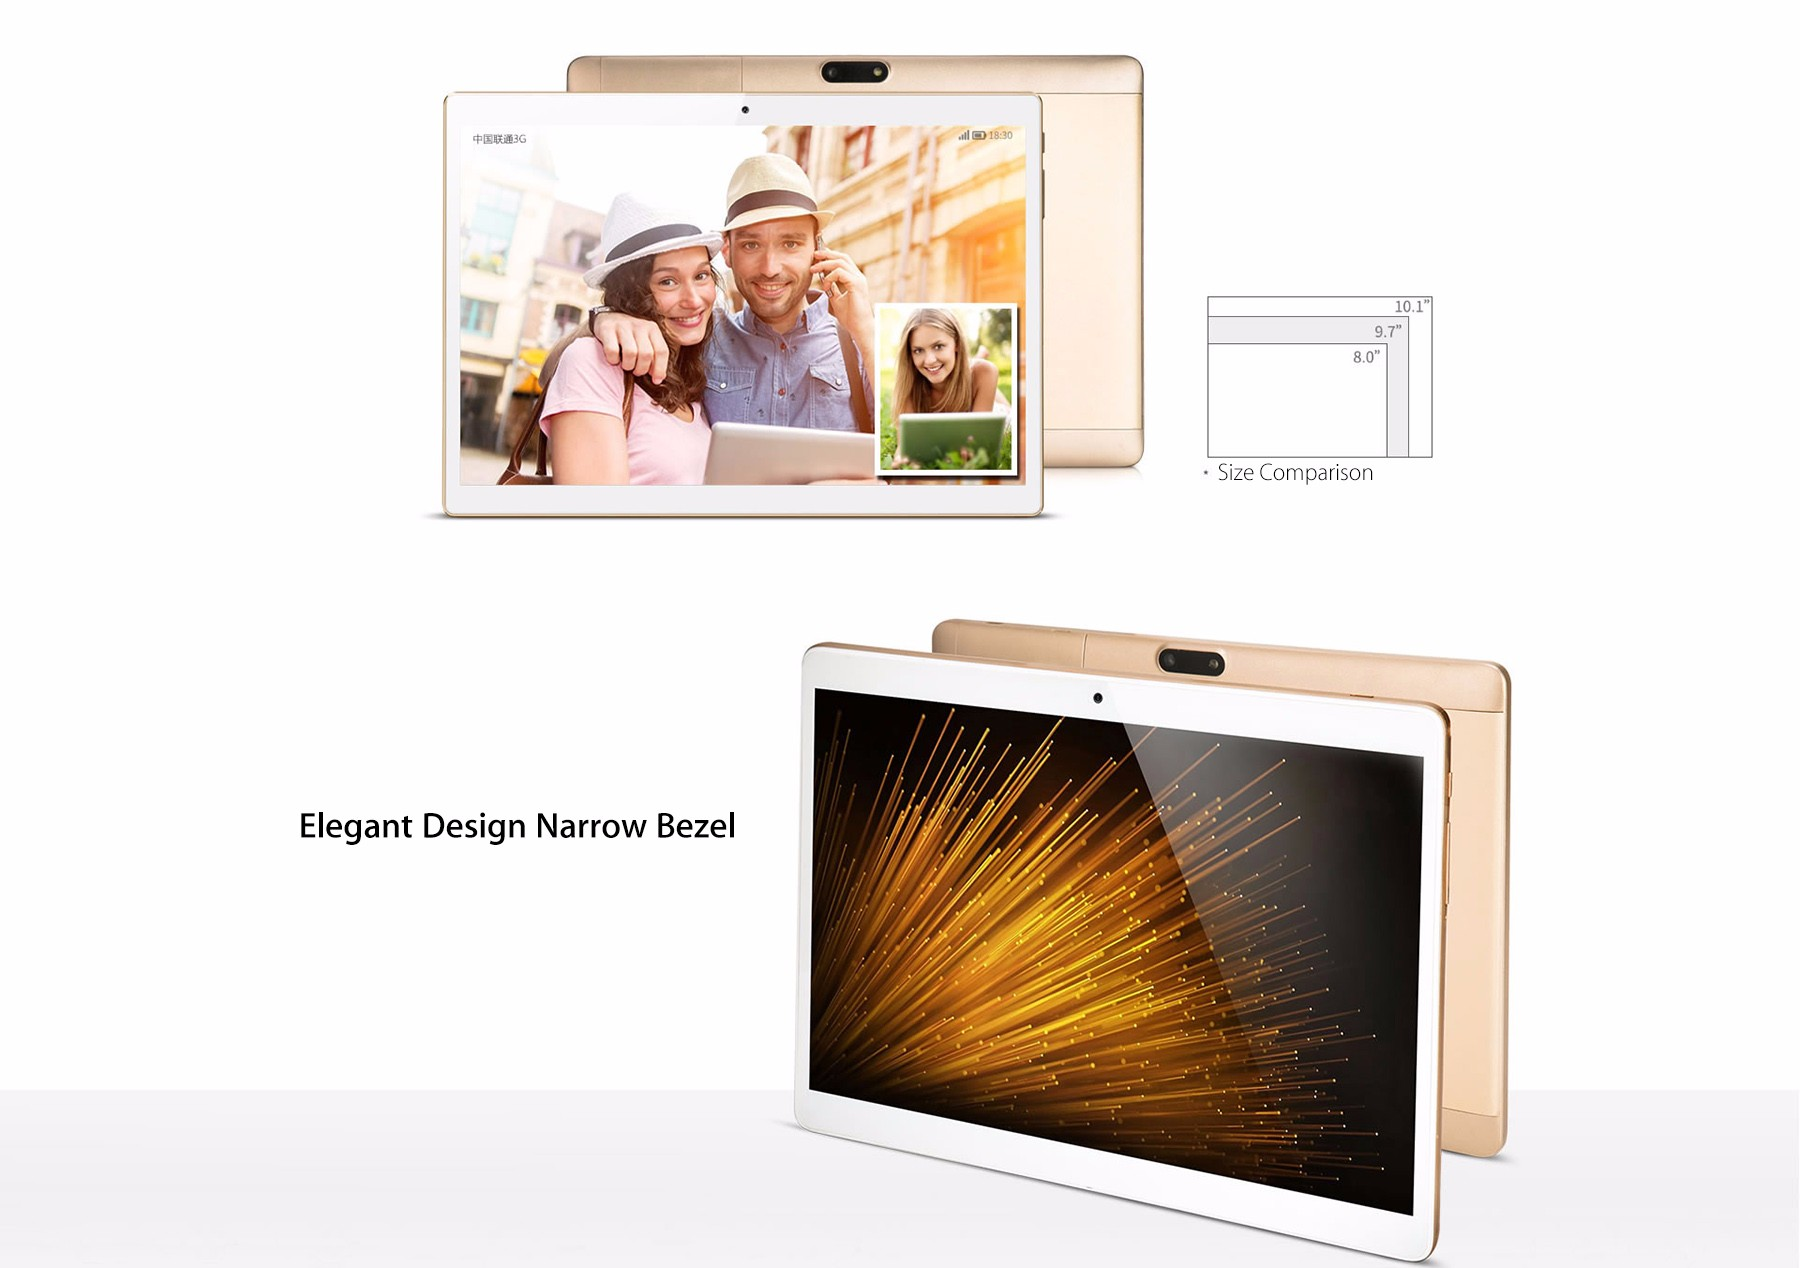 Onda V10 3G Phablet 10.1 inch IPS Screen Android 5.1 MTK8321 1.3GHz Quad Core 1GB RAM 16GB eMMC Dual Cameras GPS